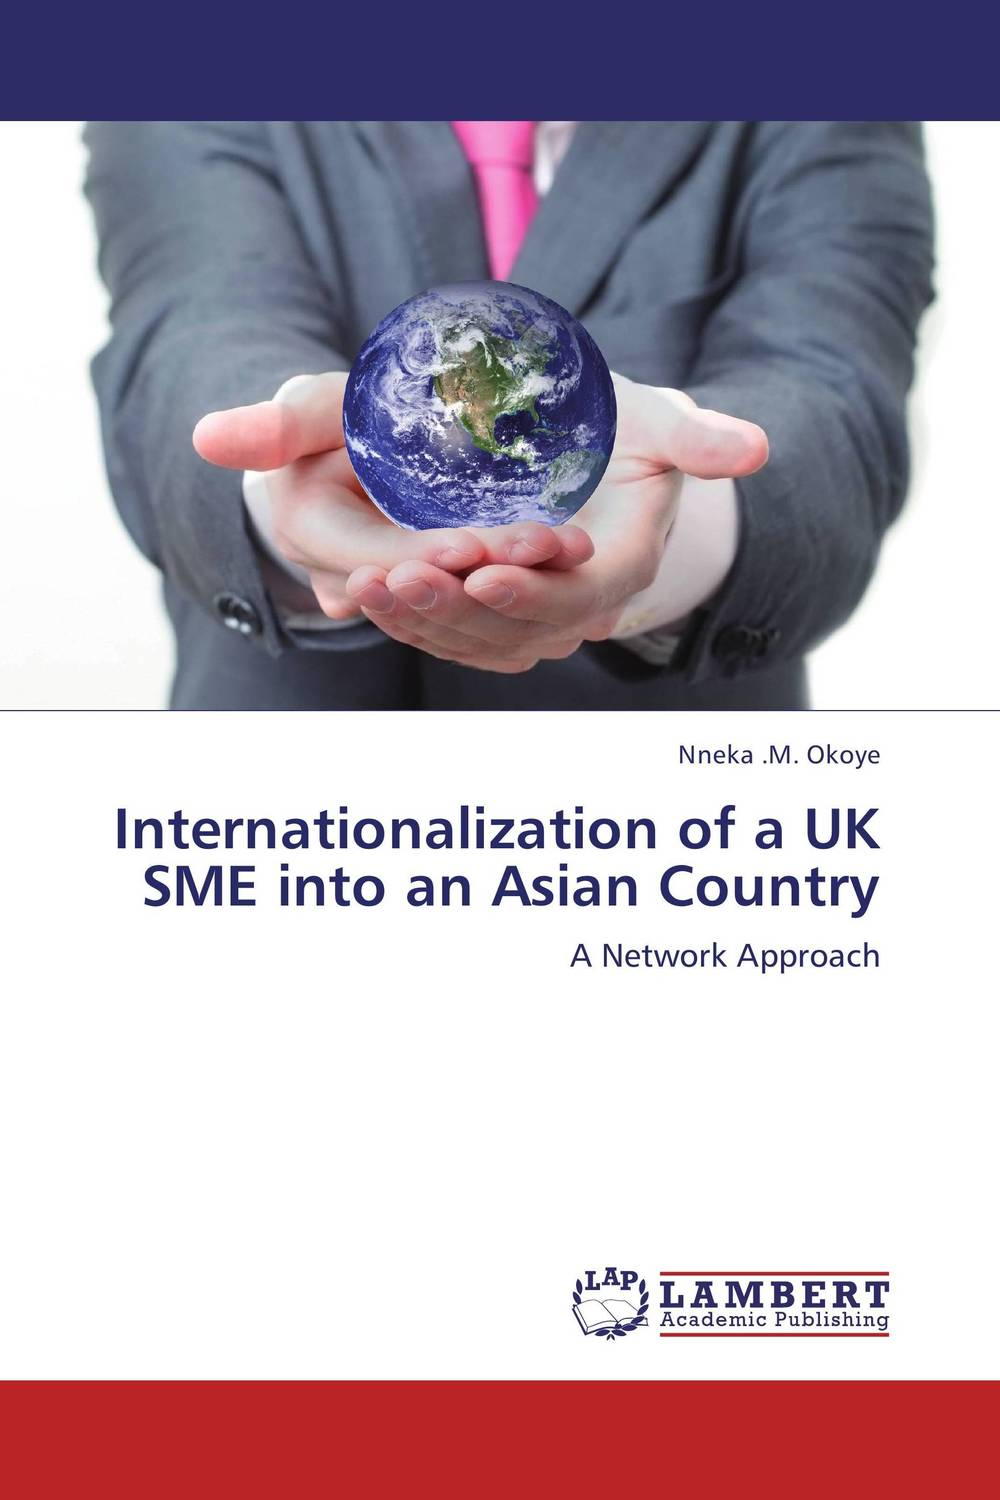 Internationalization of a UK SME into an Asian Country business plan for a start up of an information brokering company